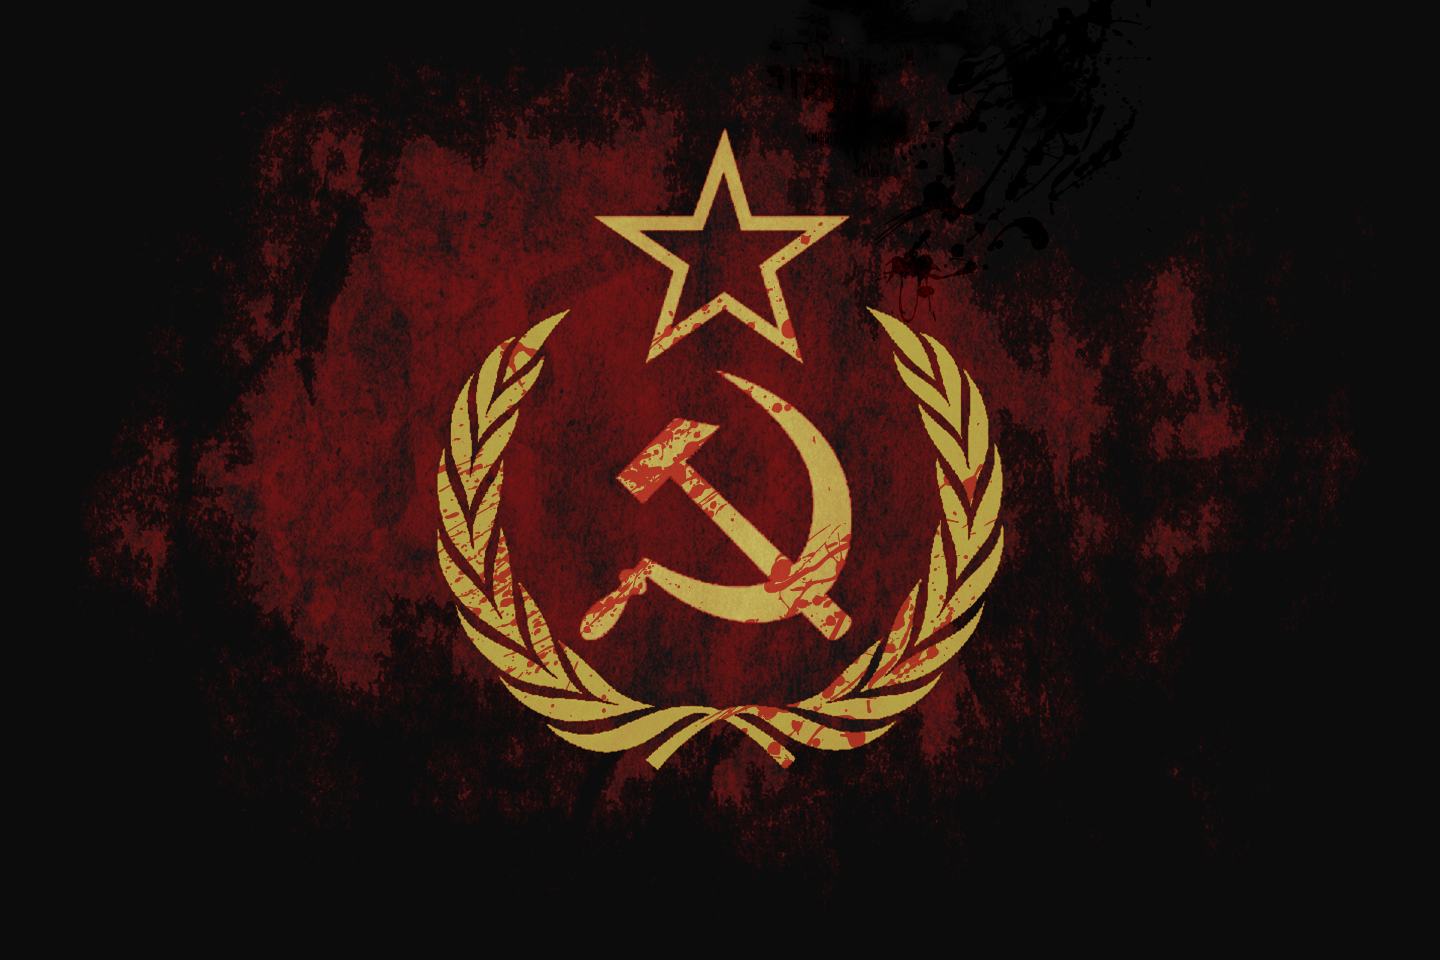 Ussr socialism wallpaper 1440x960 60456 wallpaperup - Ussr wallpaper ...